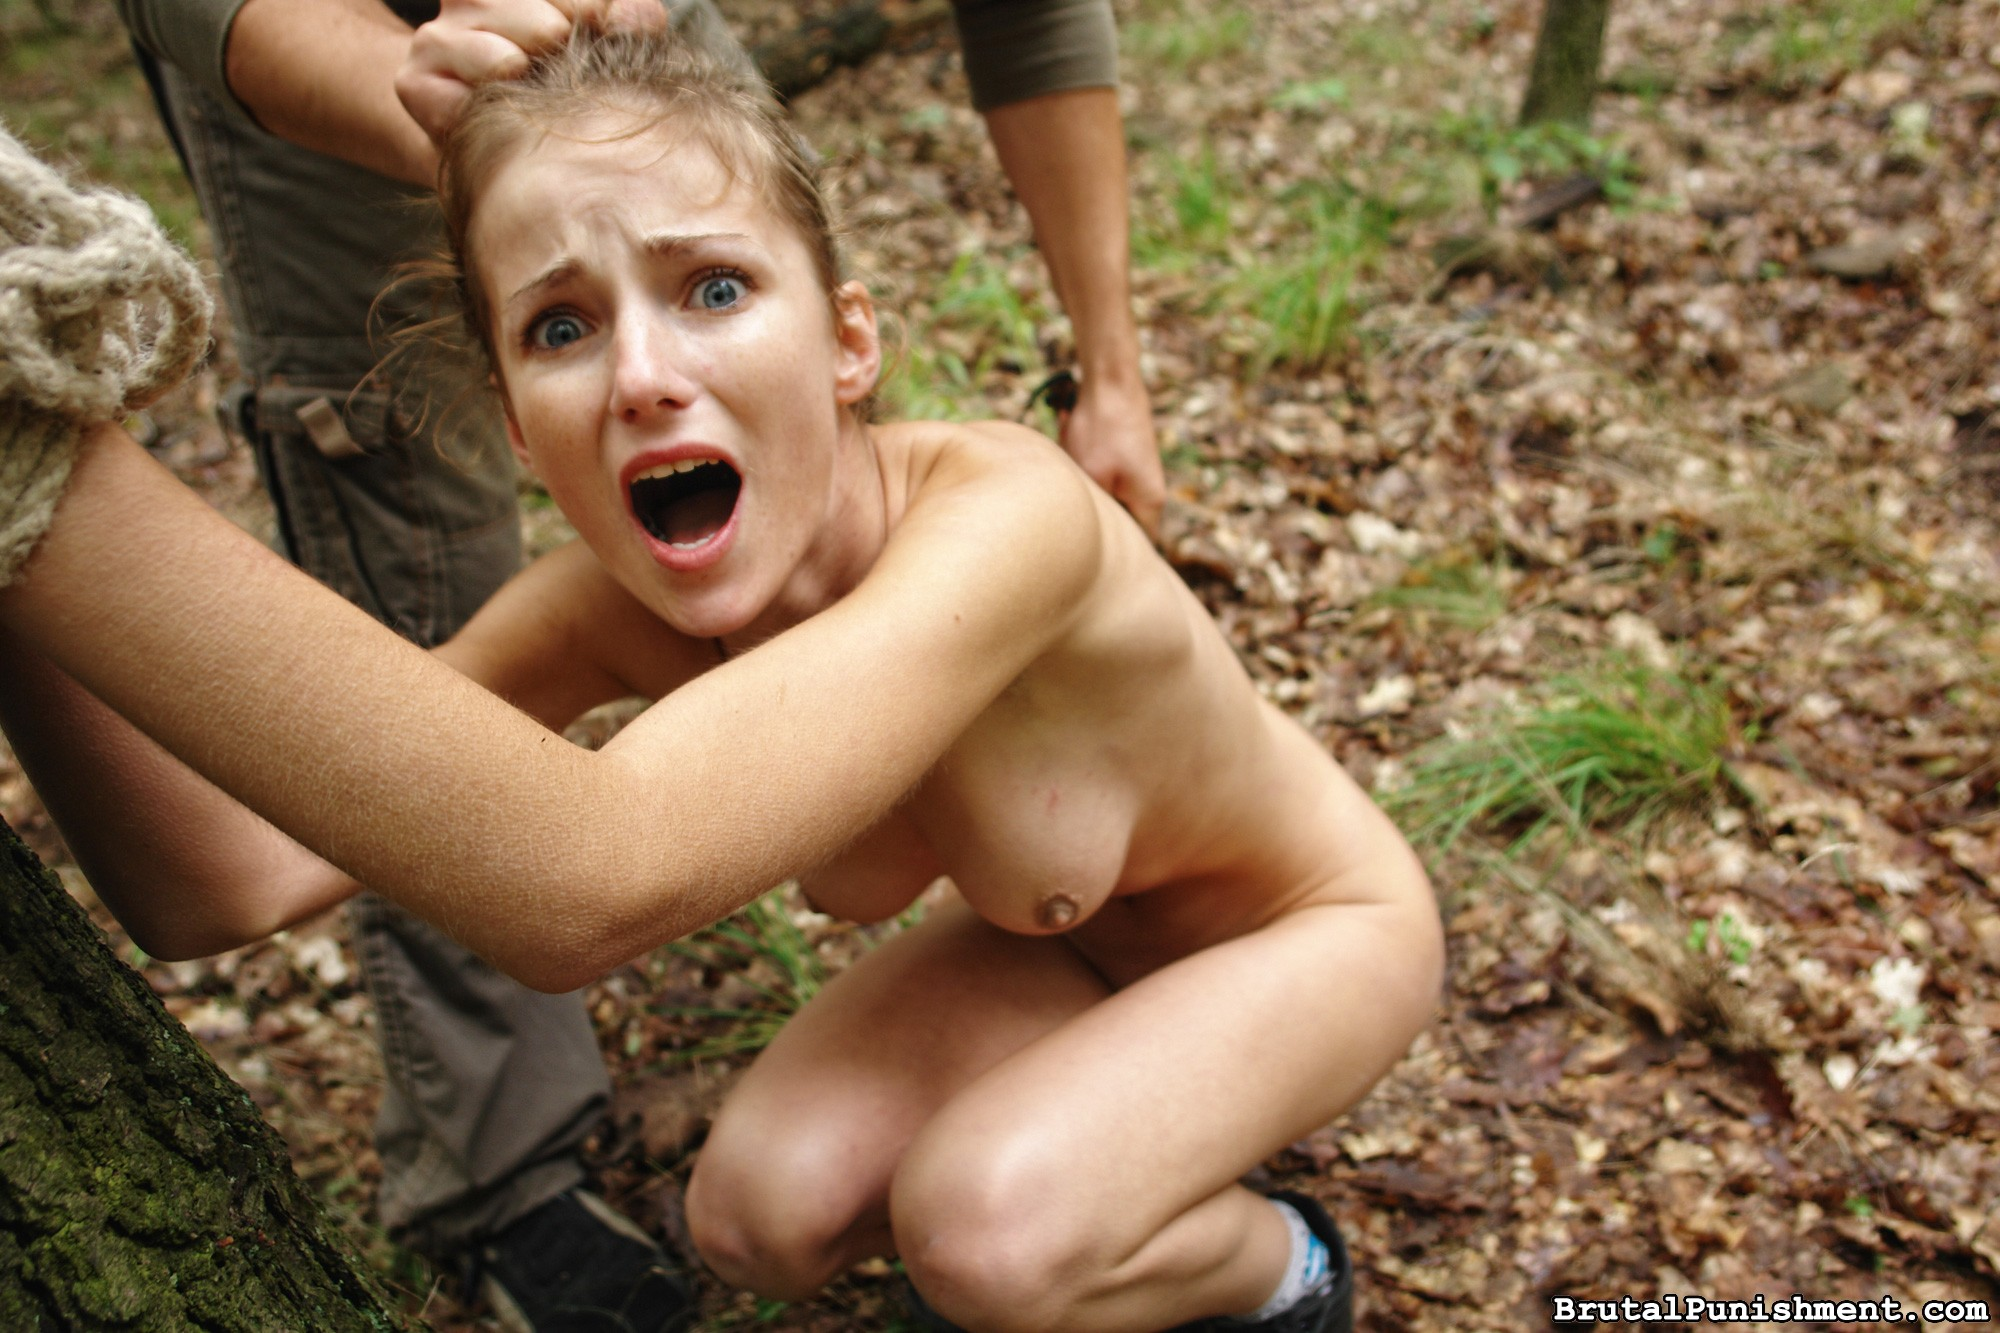 Punished xxx video nude photos